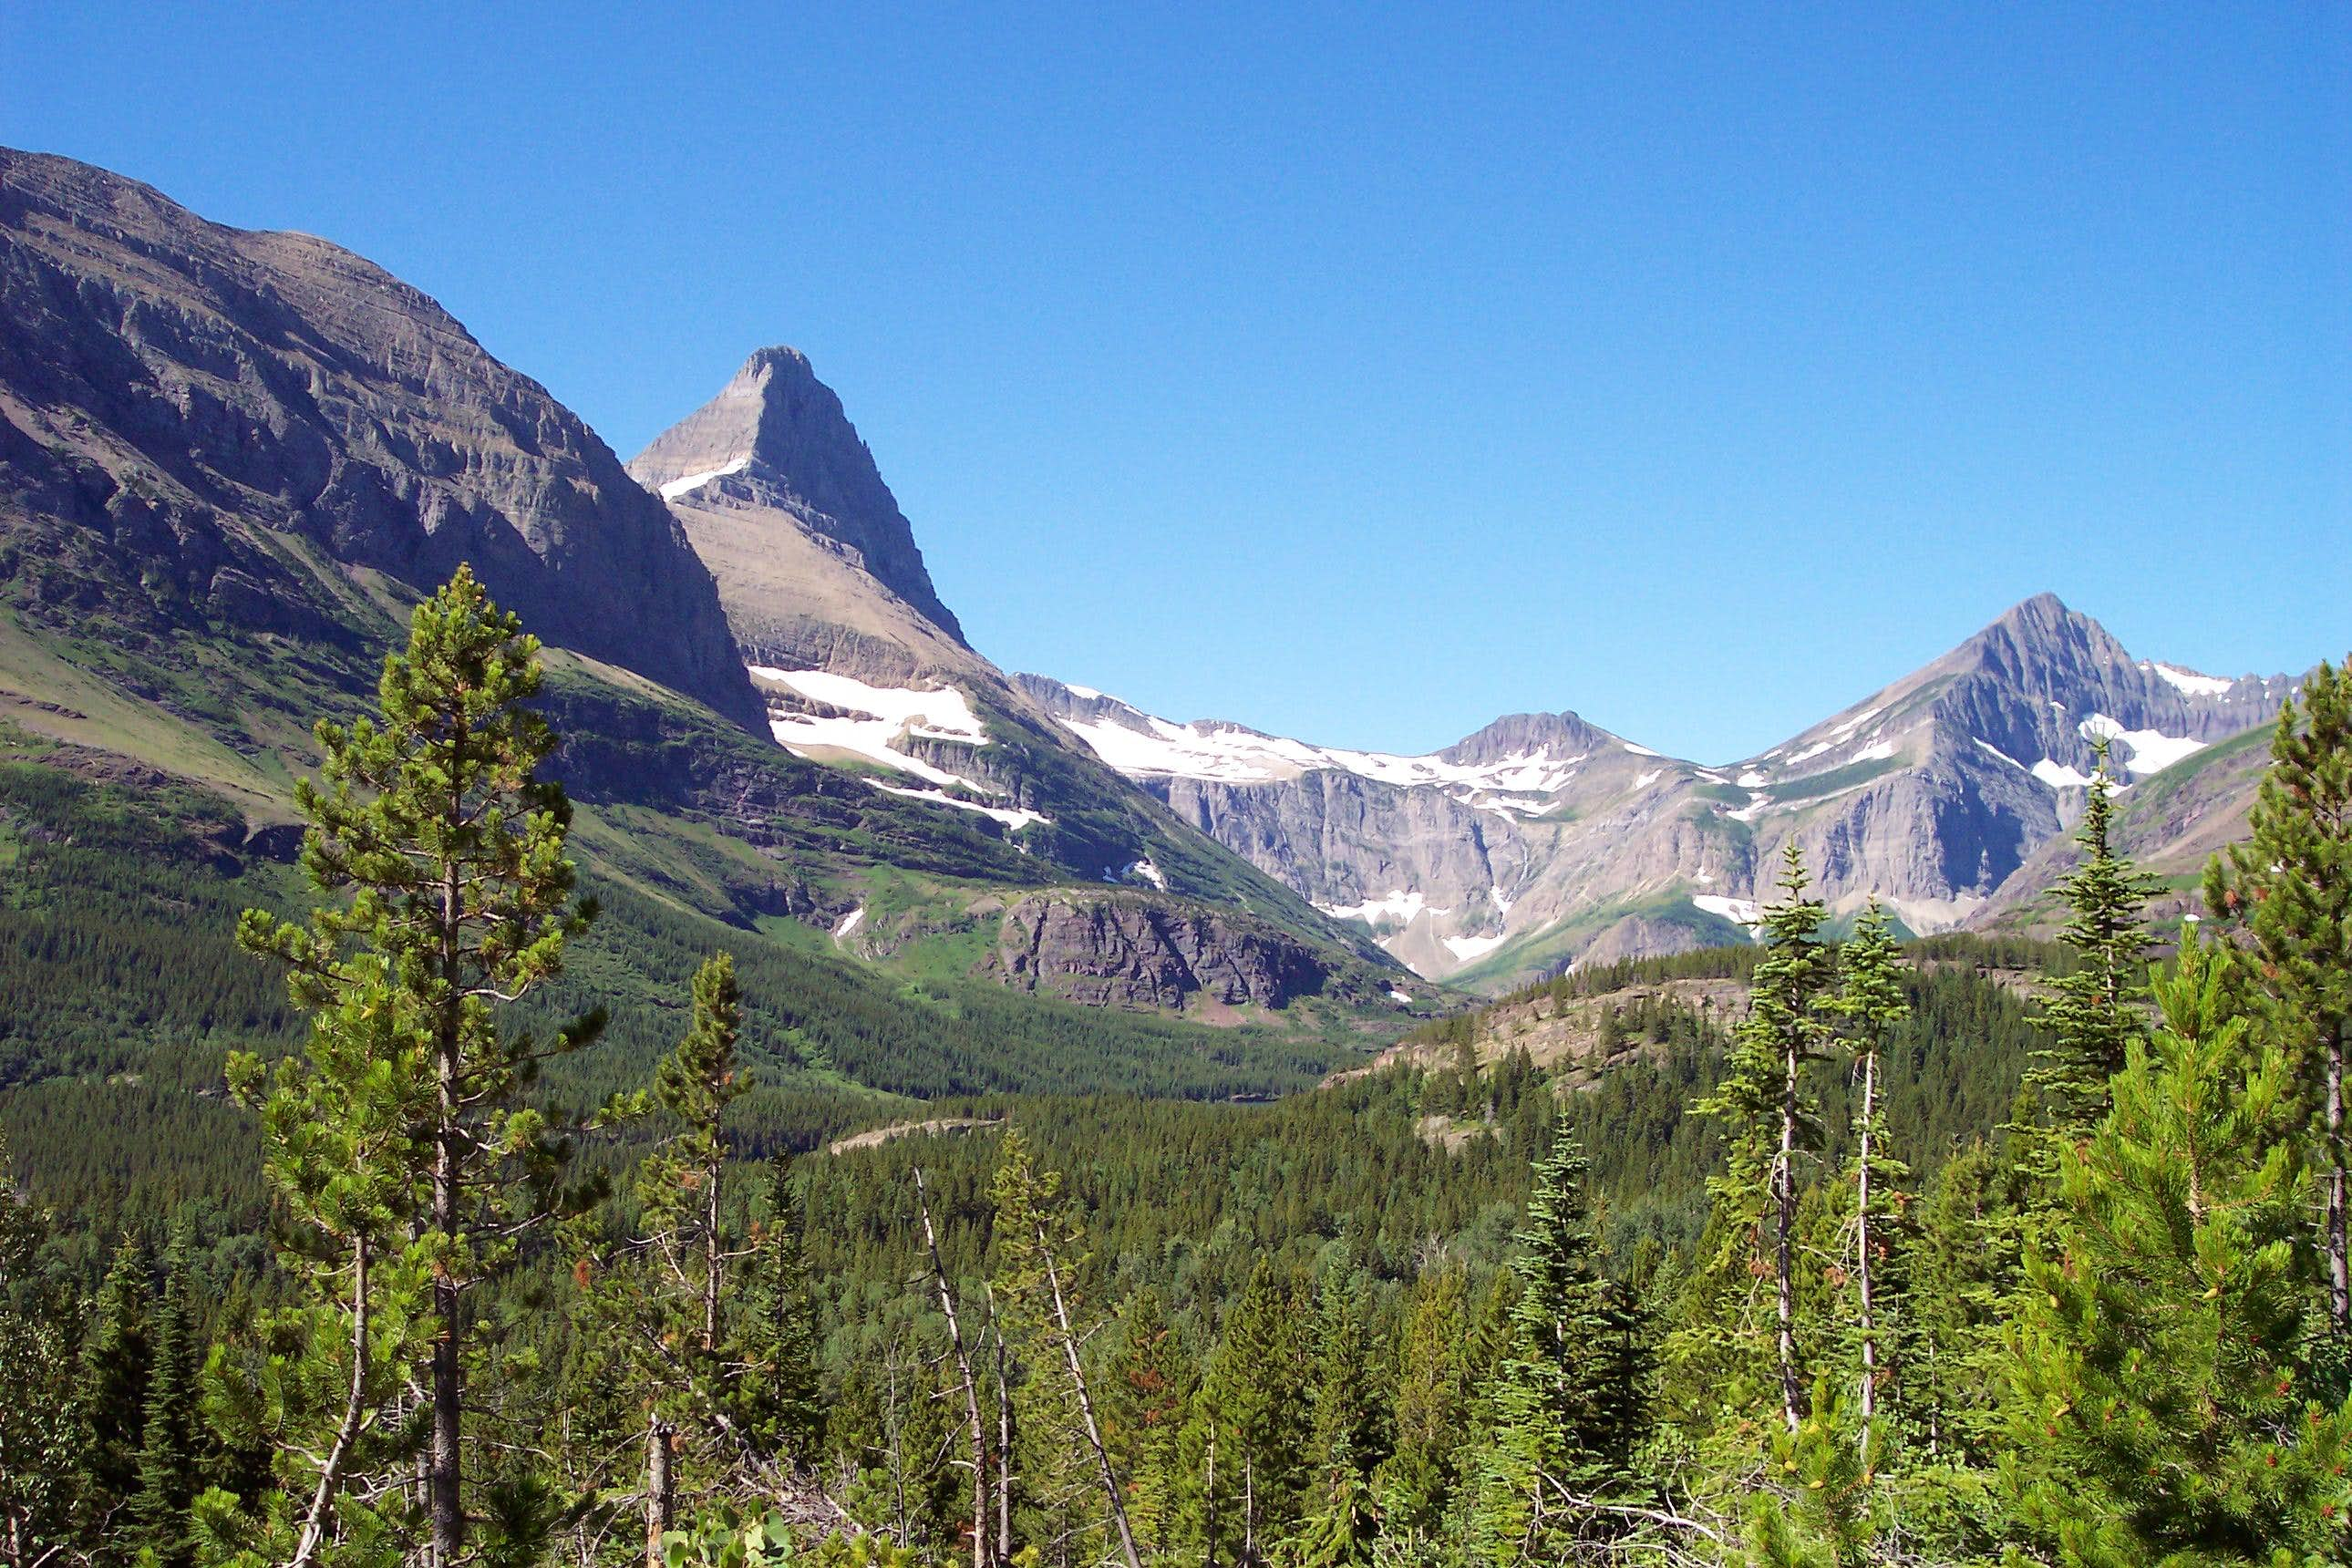 From Thrills to Spills: Accidents in Glacier National Park